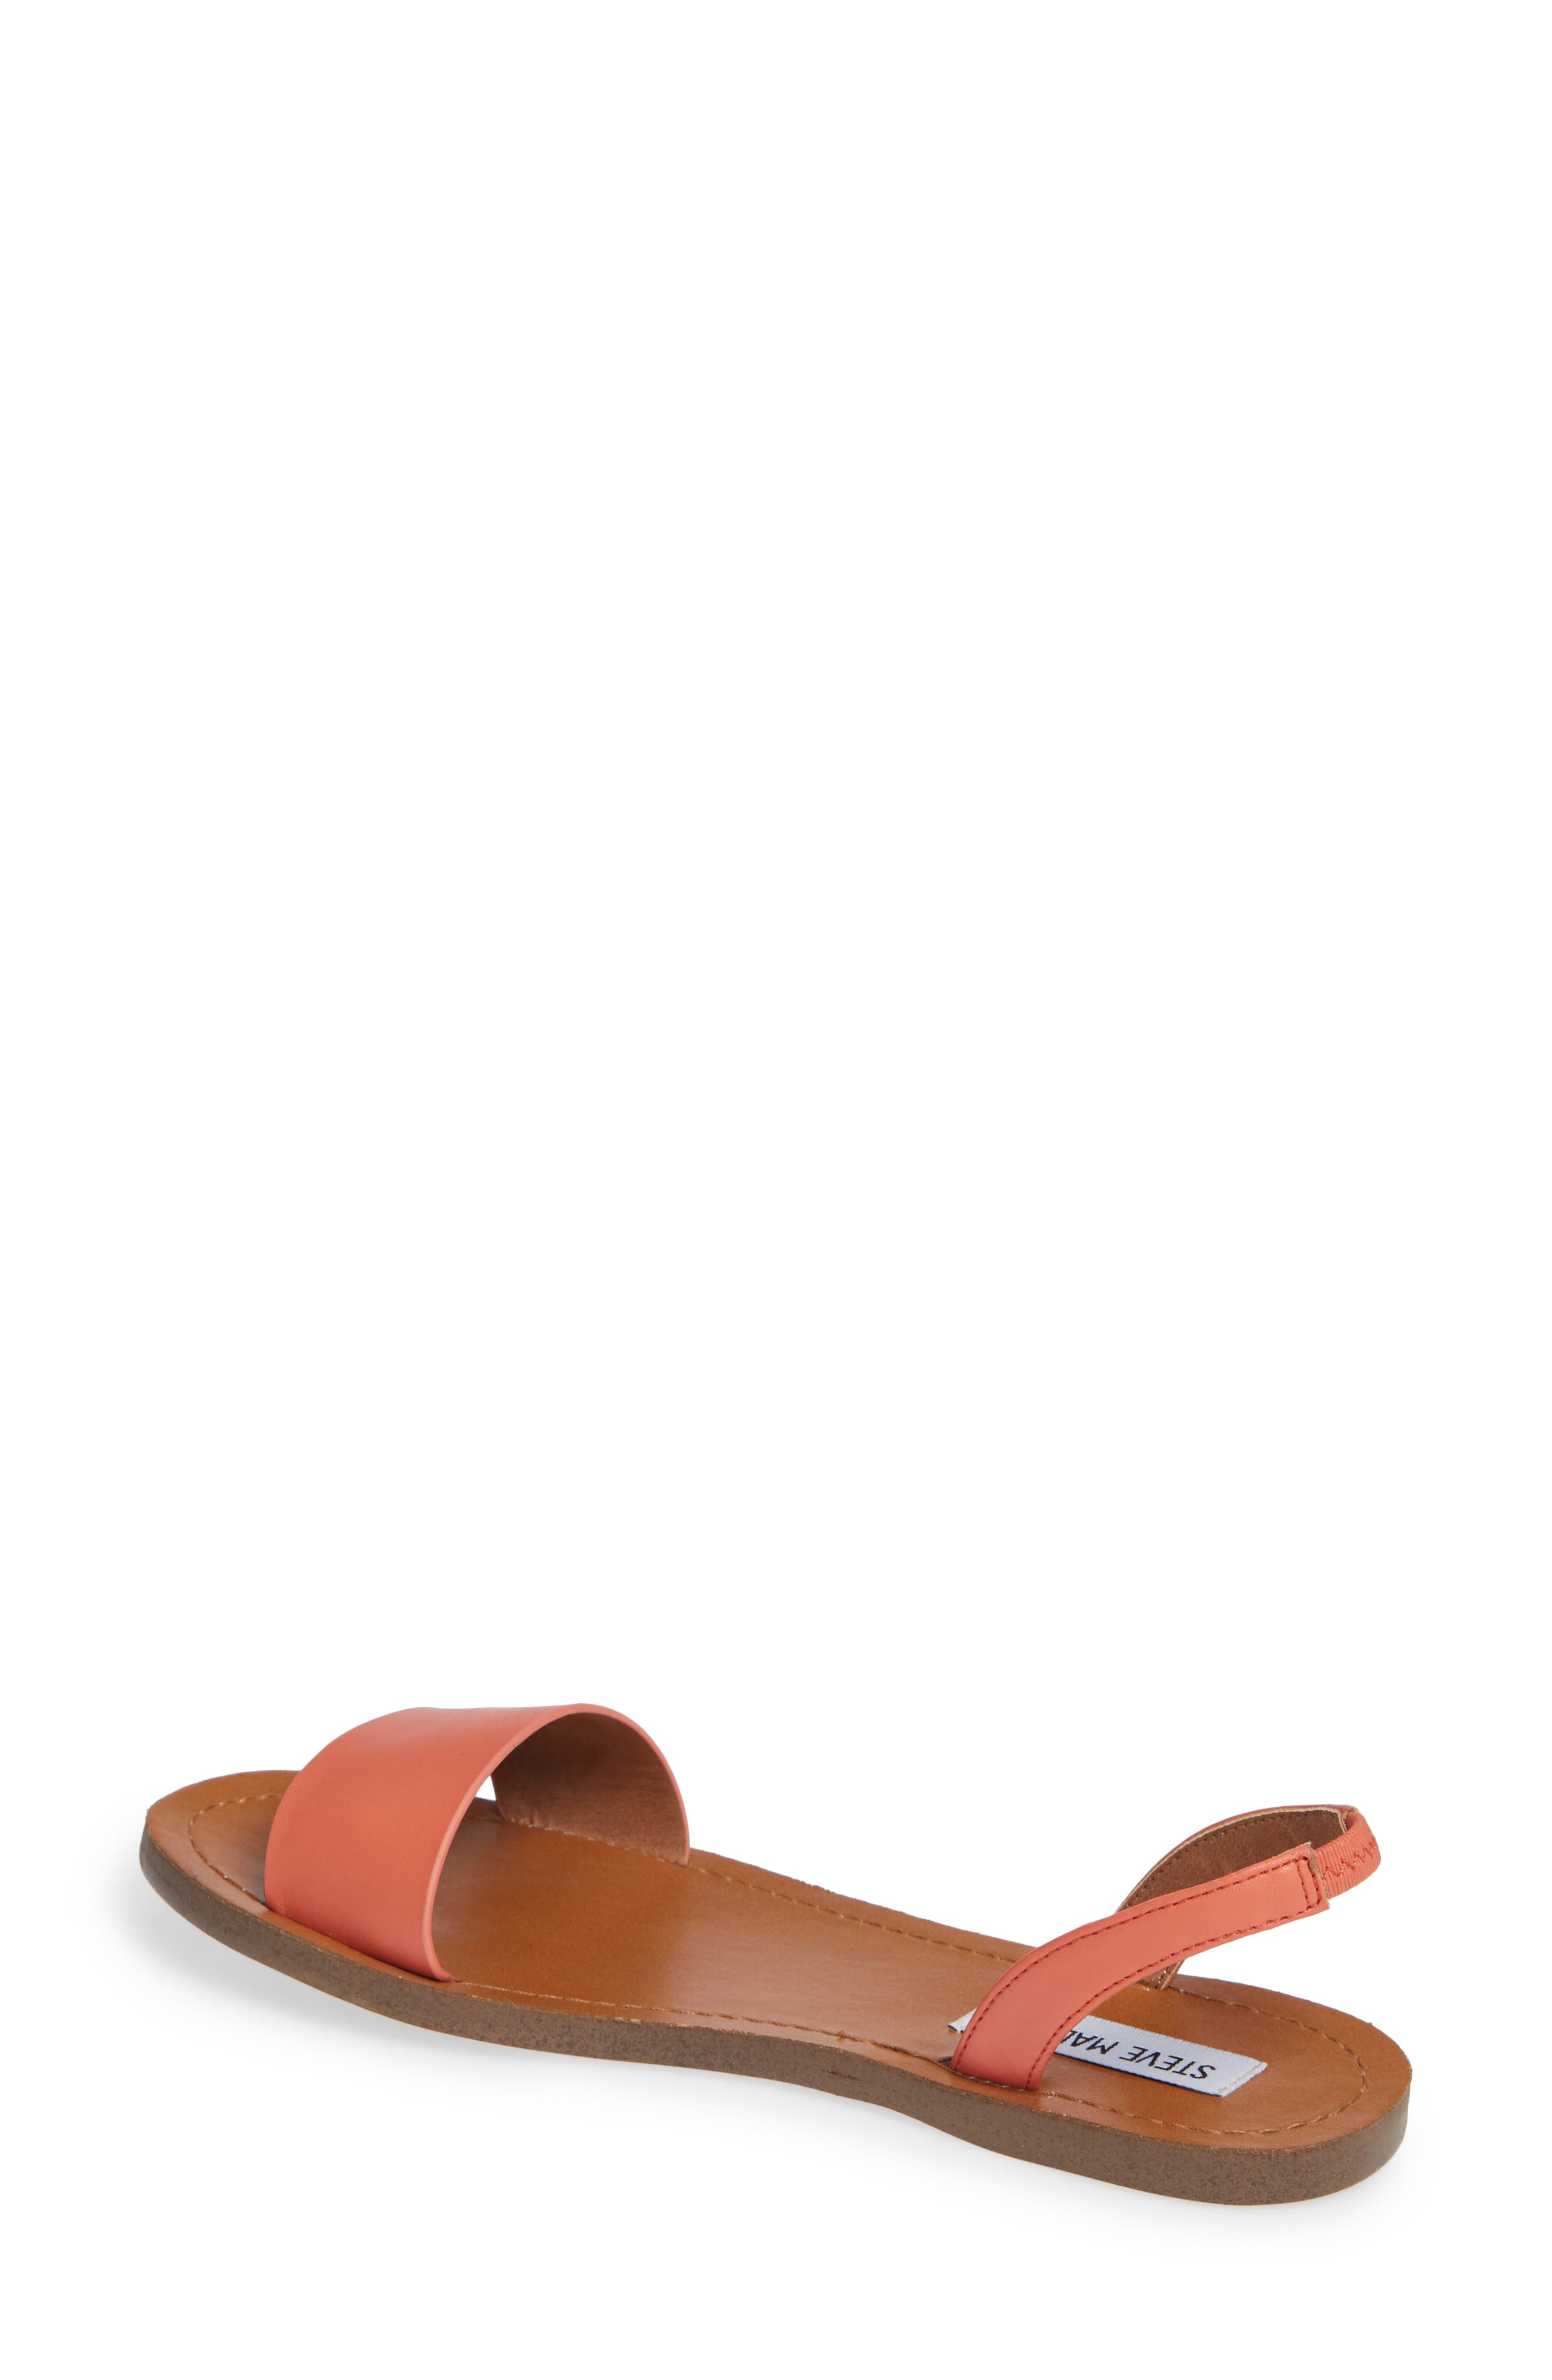 Alina Sandal,                             Alternate thumbnail 2, color,                             Coral